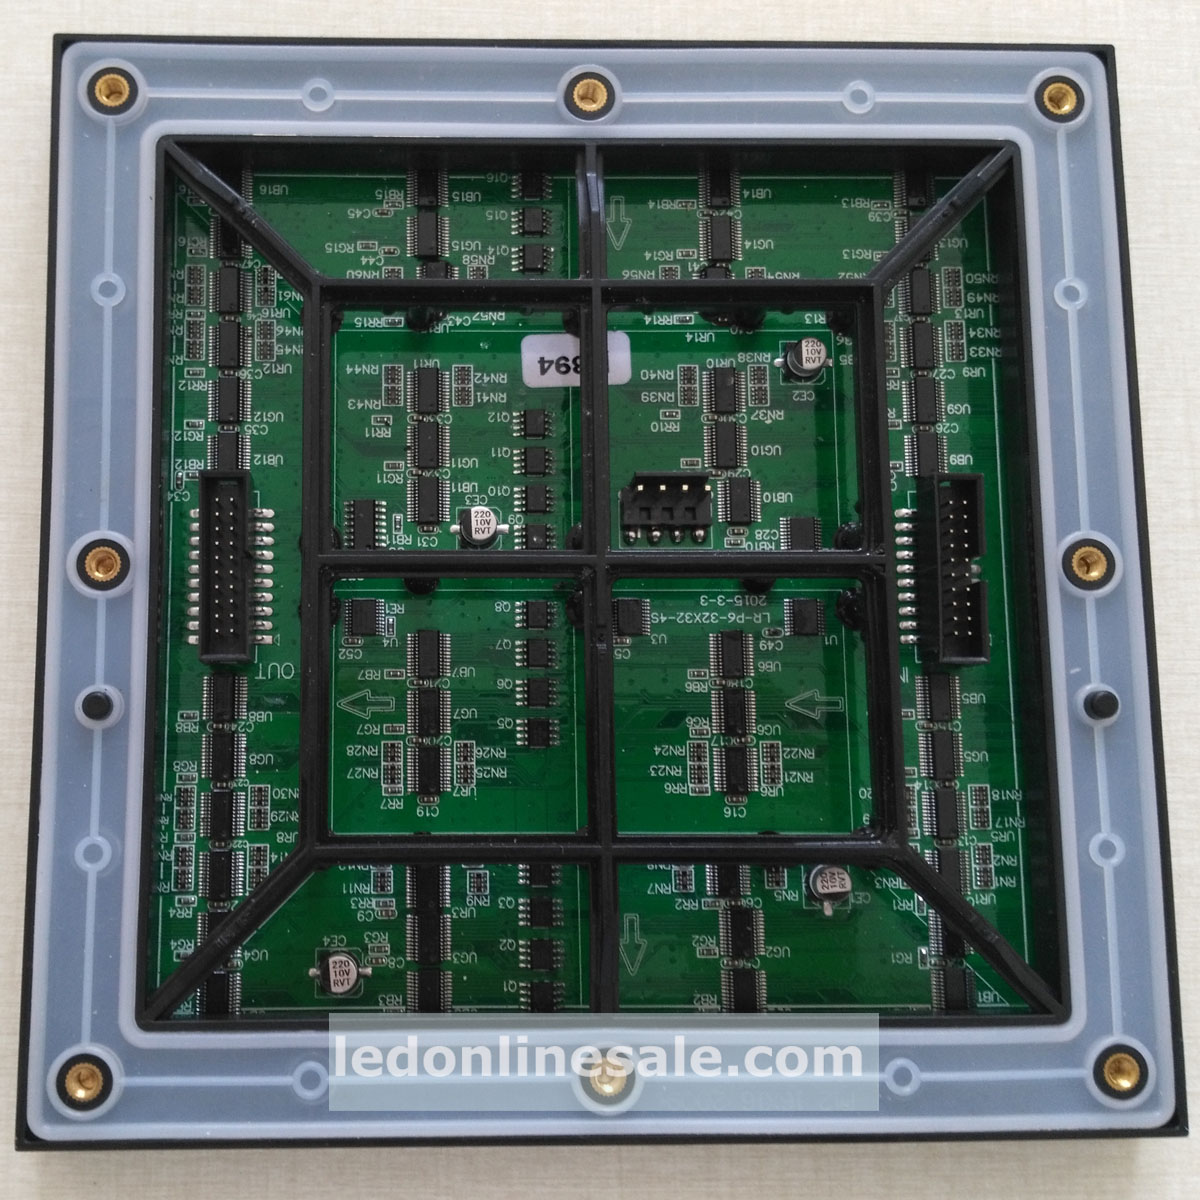 Led Online P6 Outdoor Led Display Module Led Online Sale